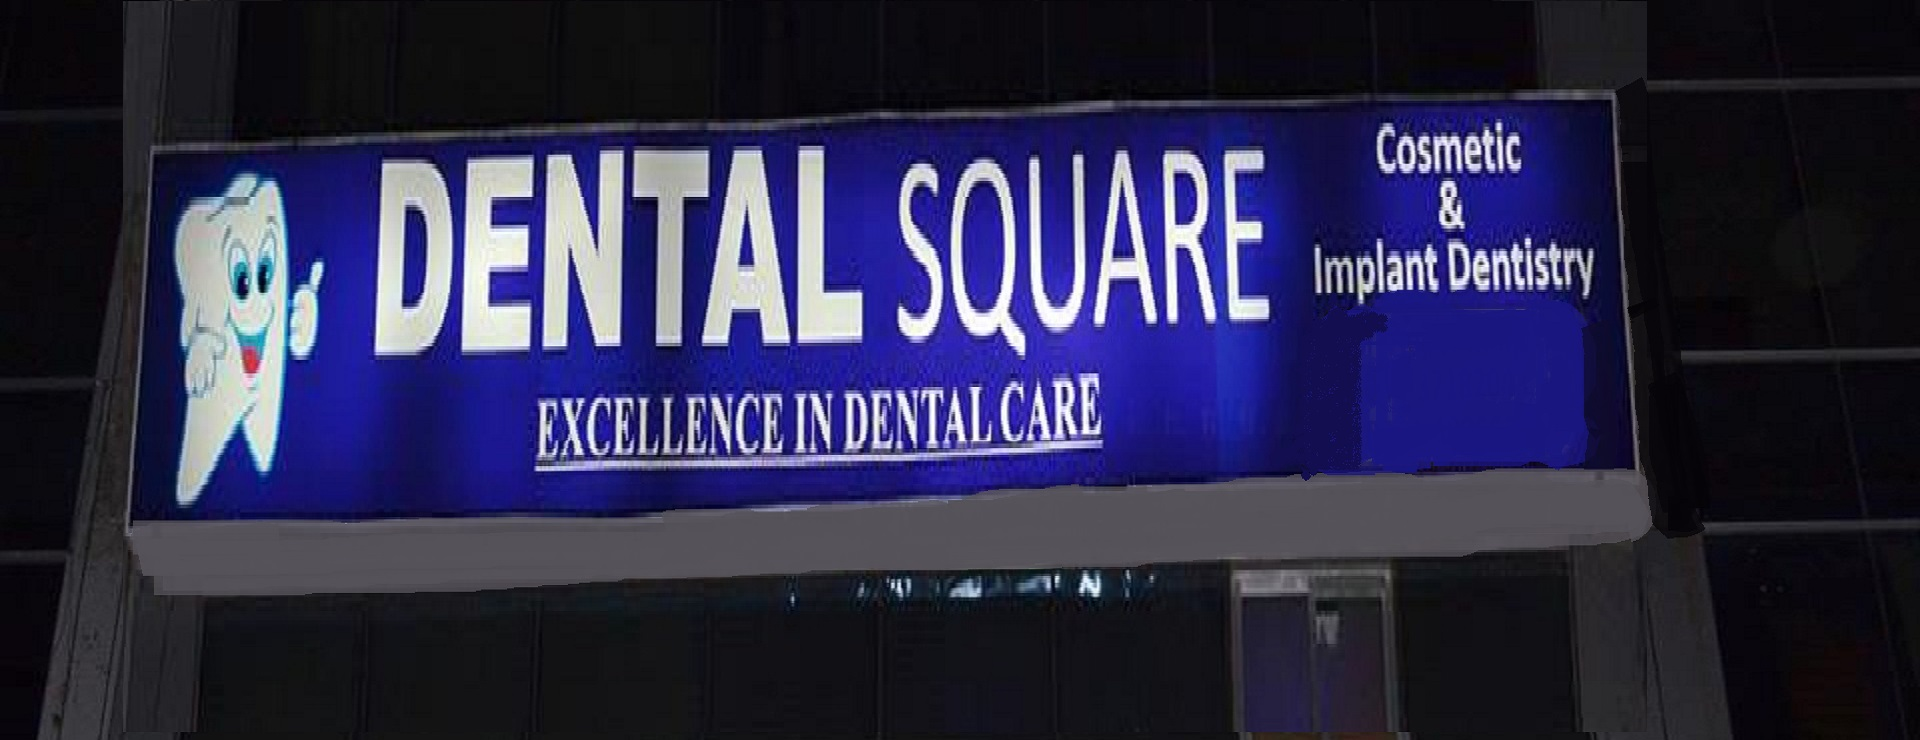 Dental square